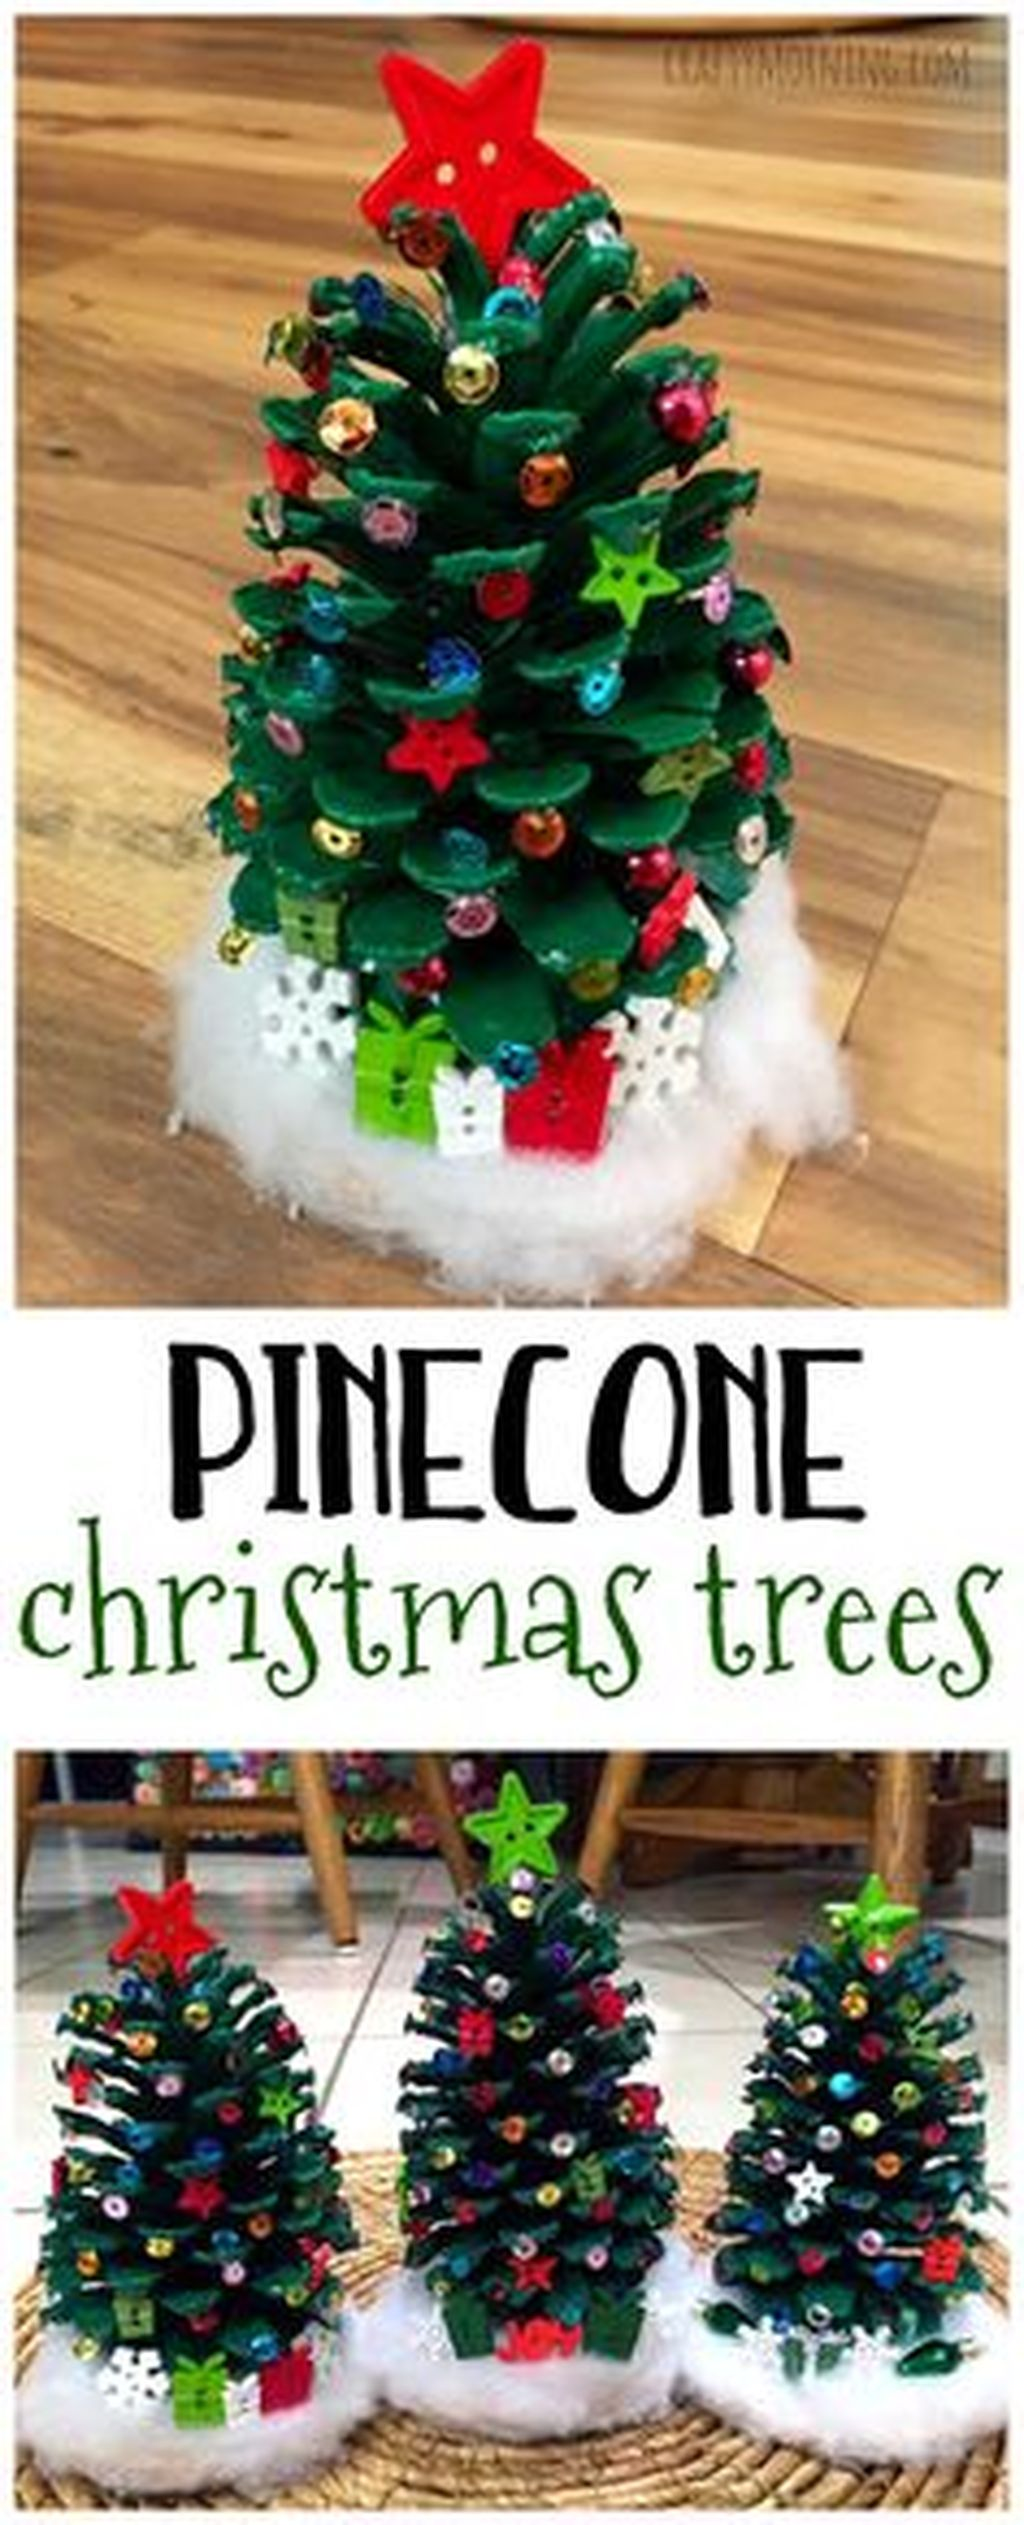 Easy And Creative DIY Christmas Tree Design Ideas You Can Try As Alternatives 68